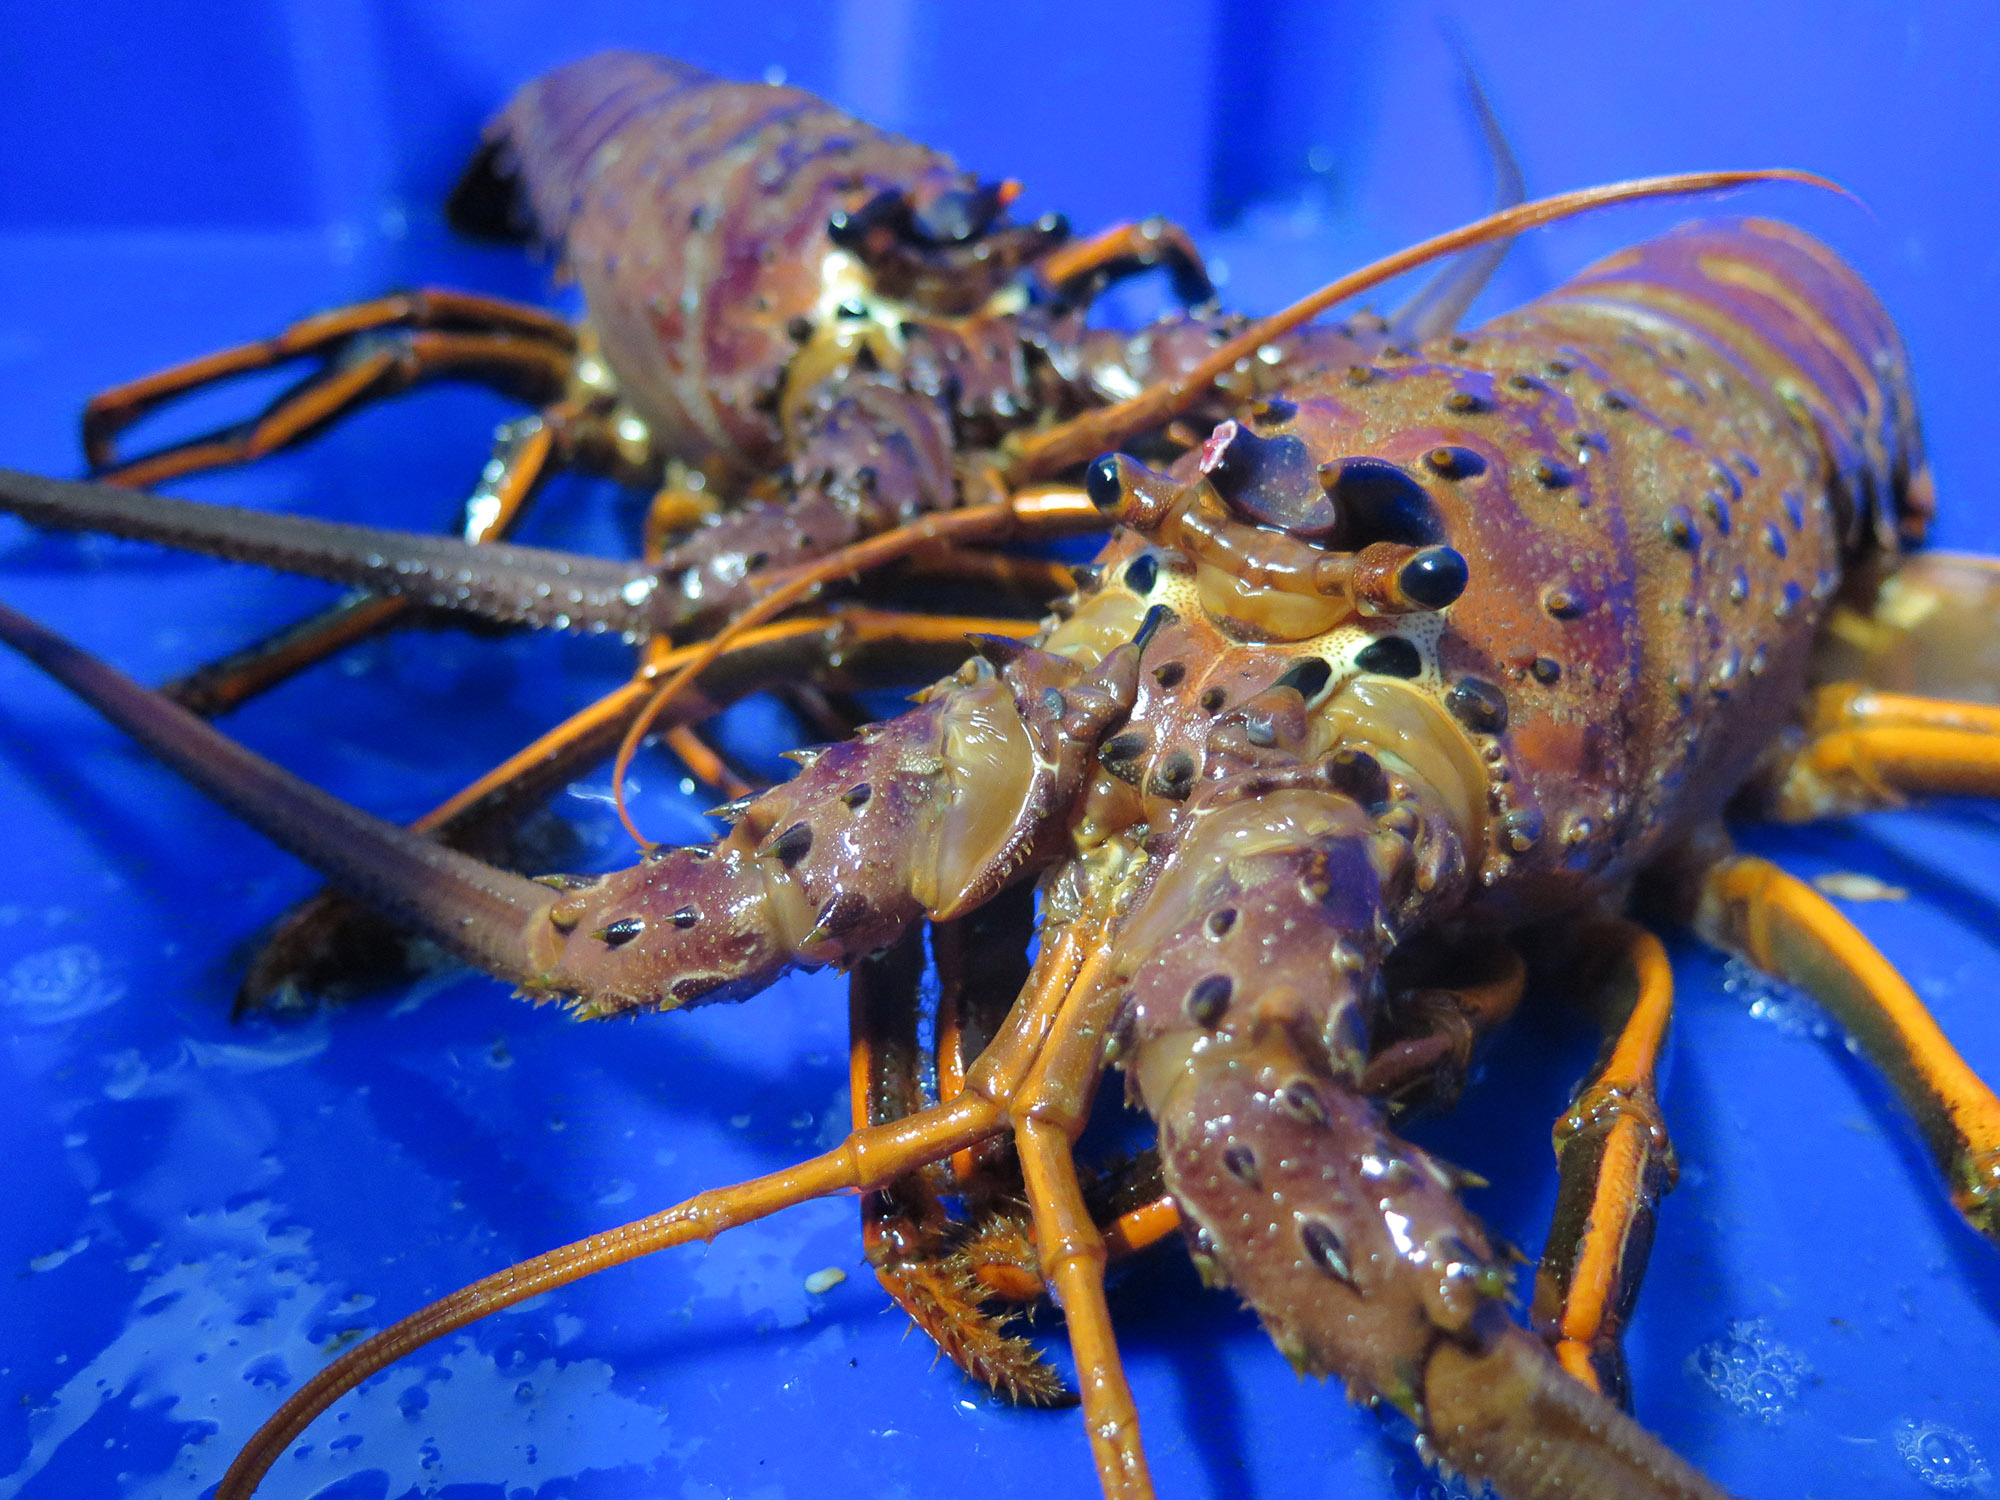 The California Spiny Lobster Season just opened today, and we're fired up because we ALREADY have First of Season Lobsters in many of our restaurants!